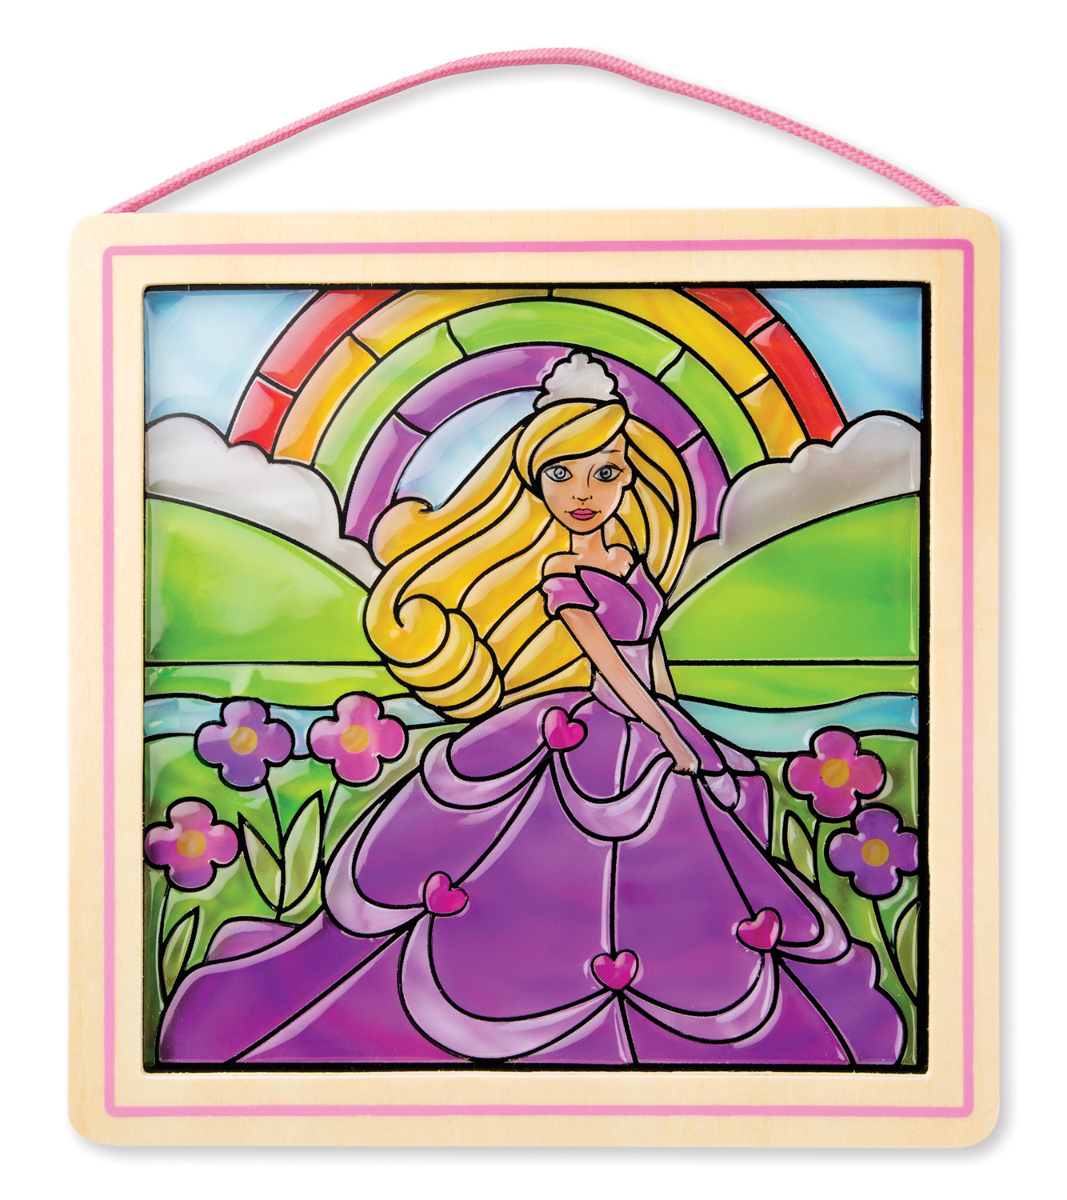 Peel & Press Stained Glass - Princess